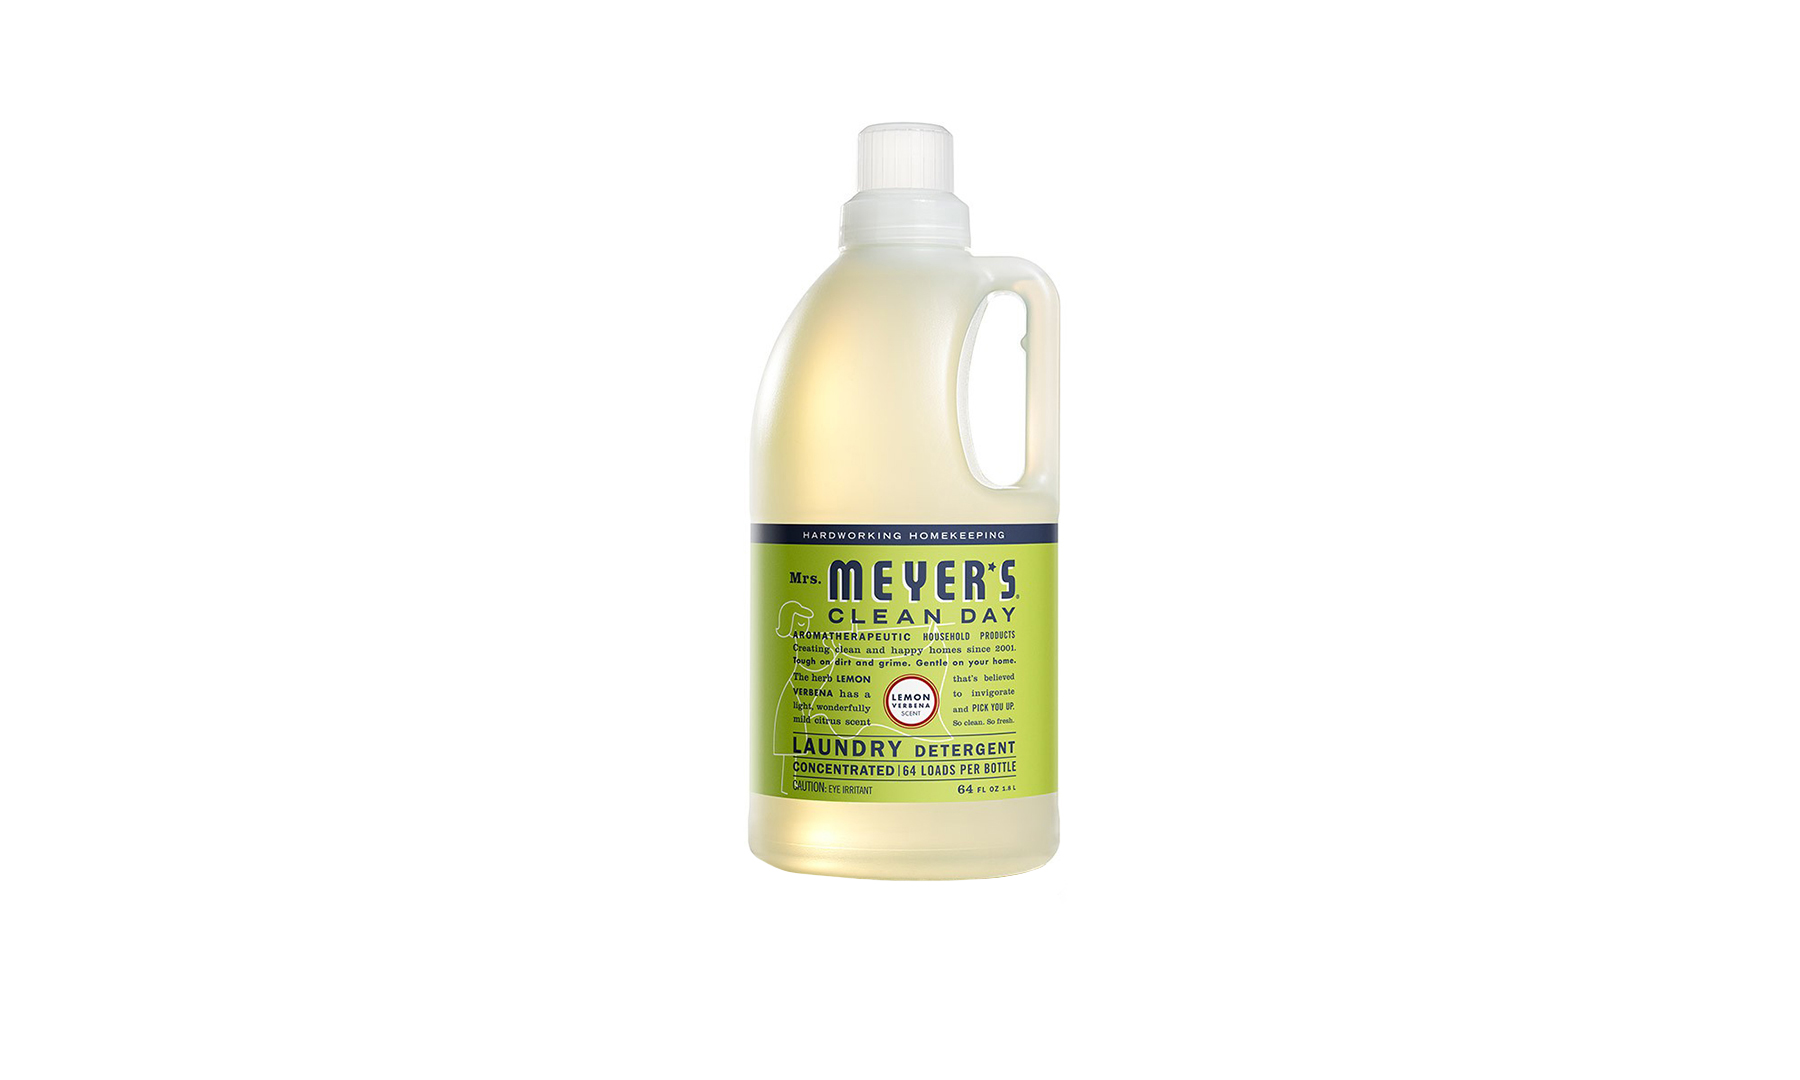 Mrs. Meyer's Lemon Verbena Laundry Detergent